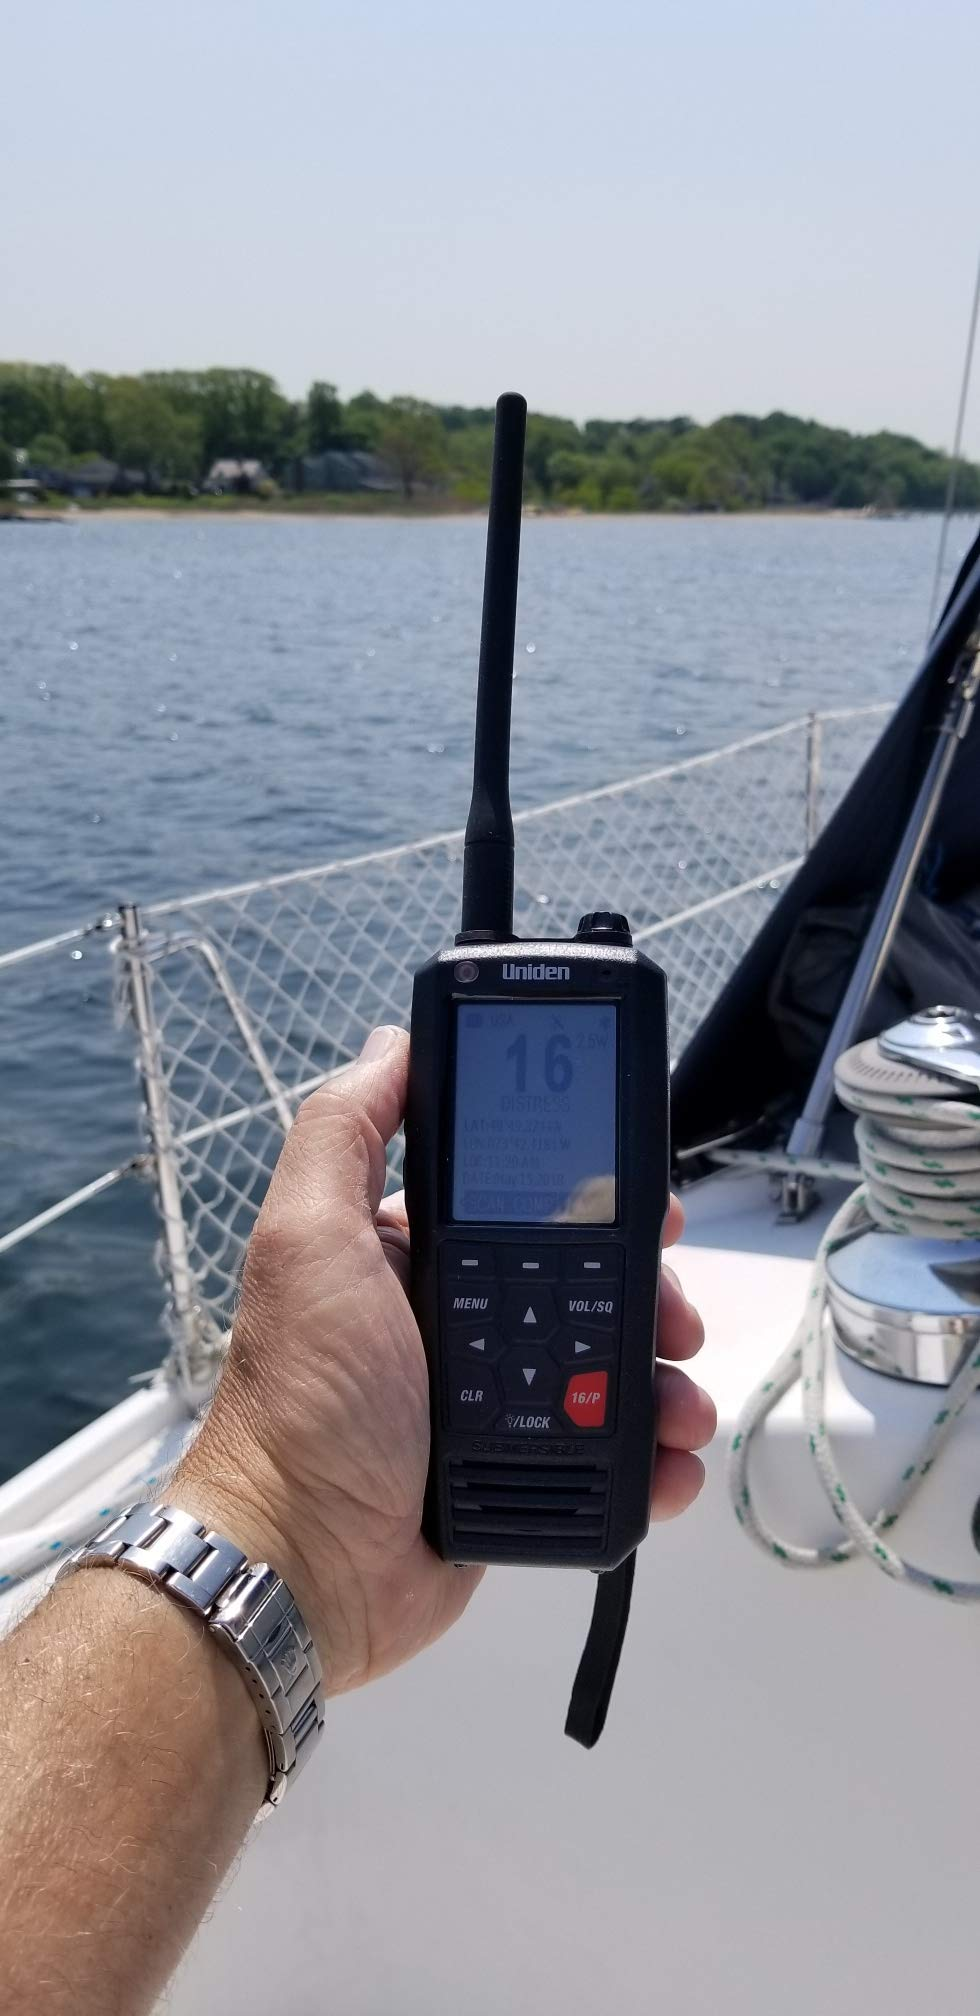 Uniden MHS335BT 6W Class D Floating Handheld VHF Marine Radio with Bluetooth, Text Message Directly to Other VHF Text Message Capable Radios, IPX8 Submersible Design by Uniden (Image #7)